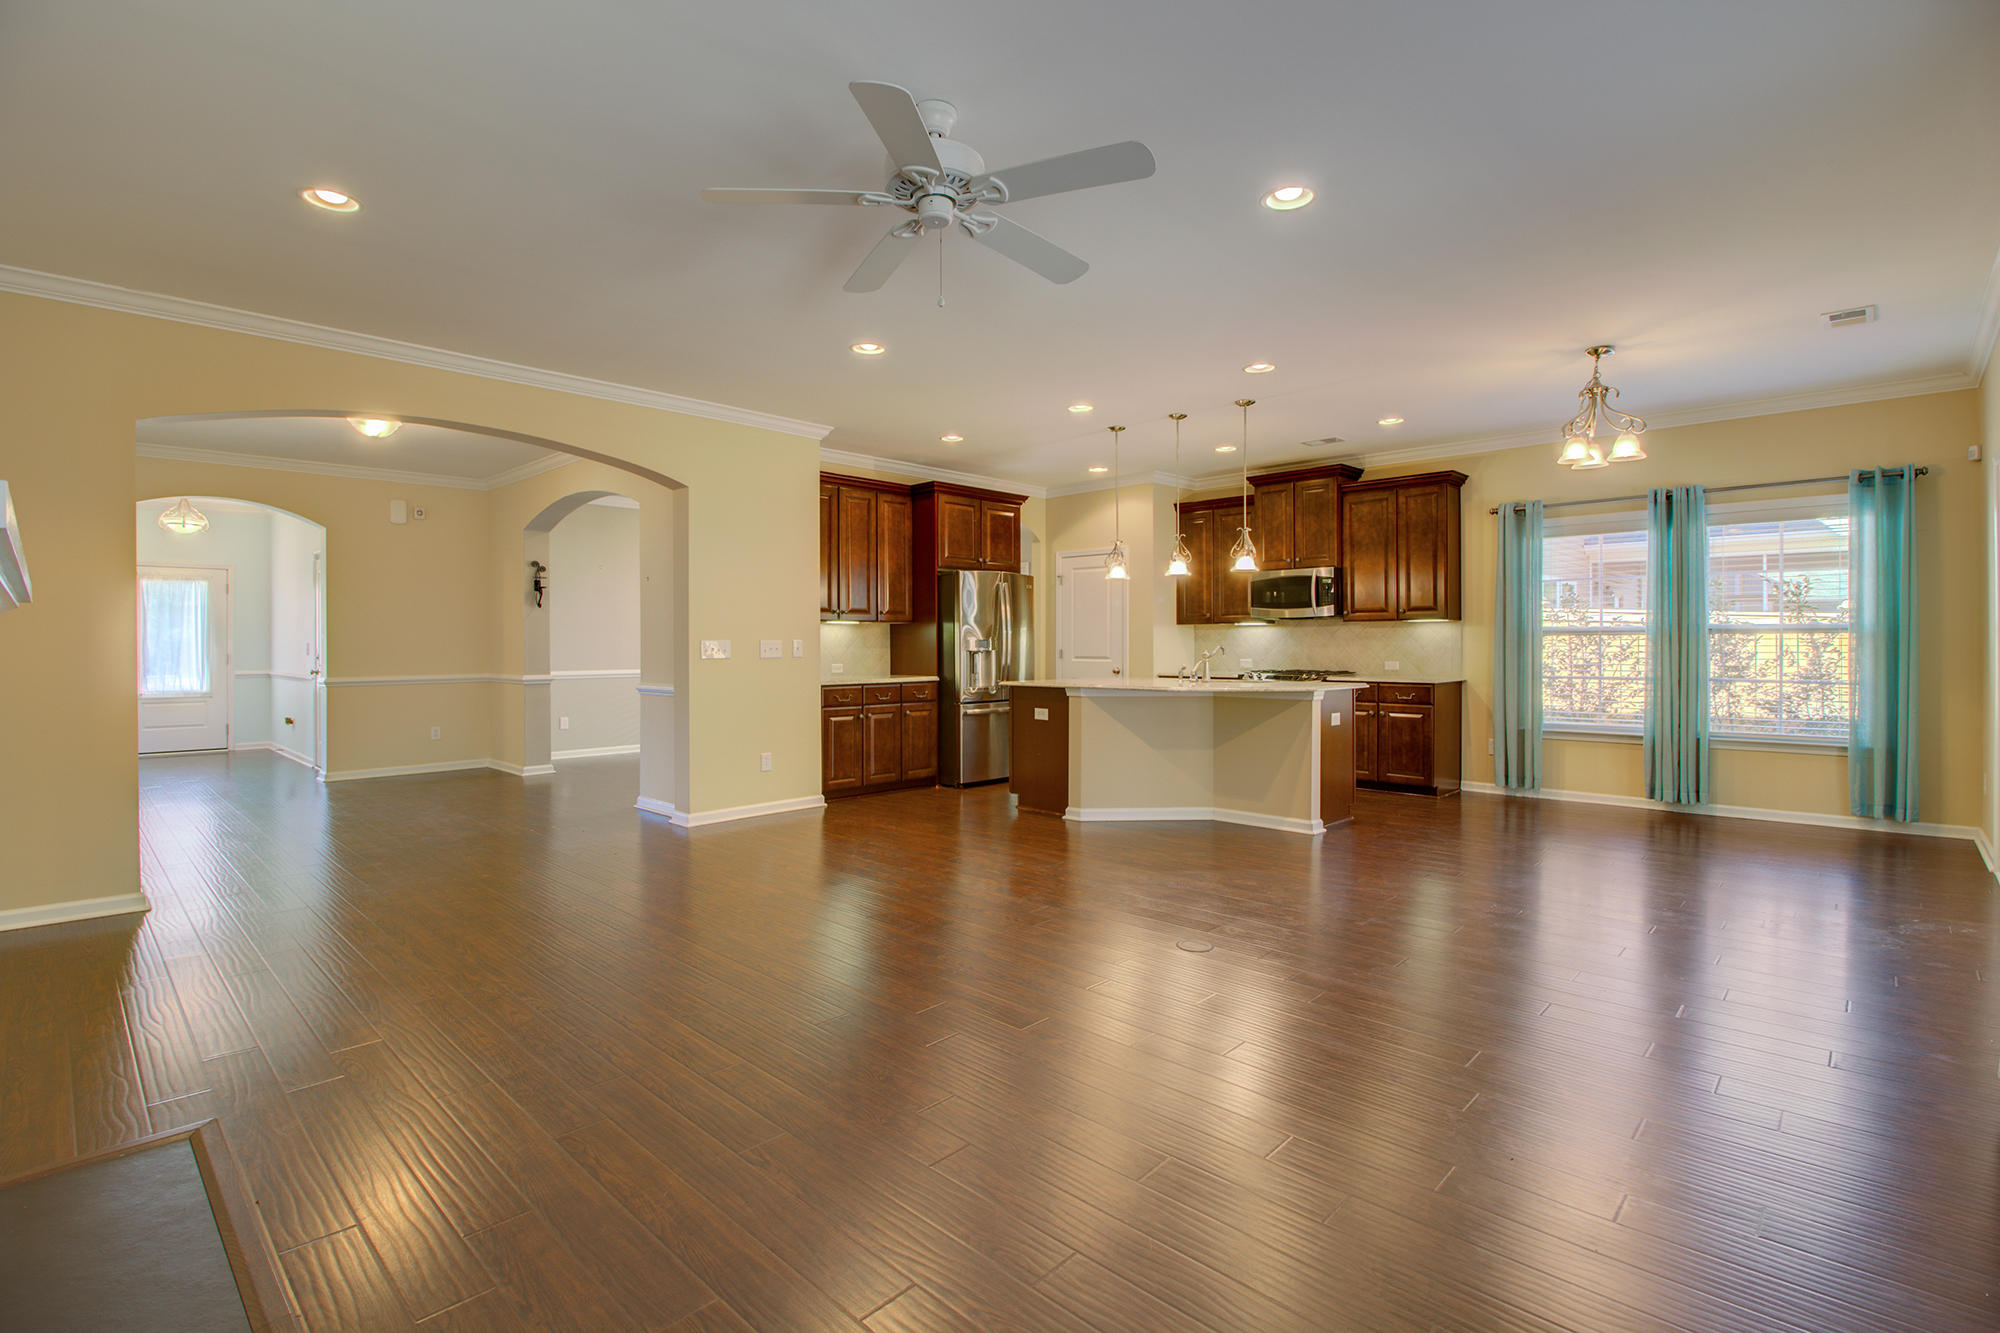 Photo of 206 Pagoda Tree Dr, Goose Creek, SC 29445